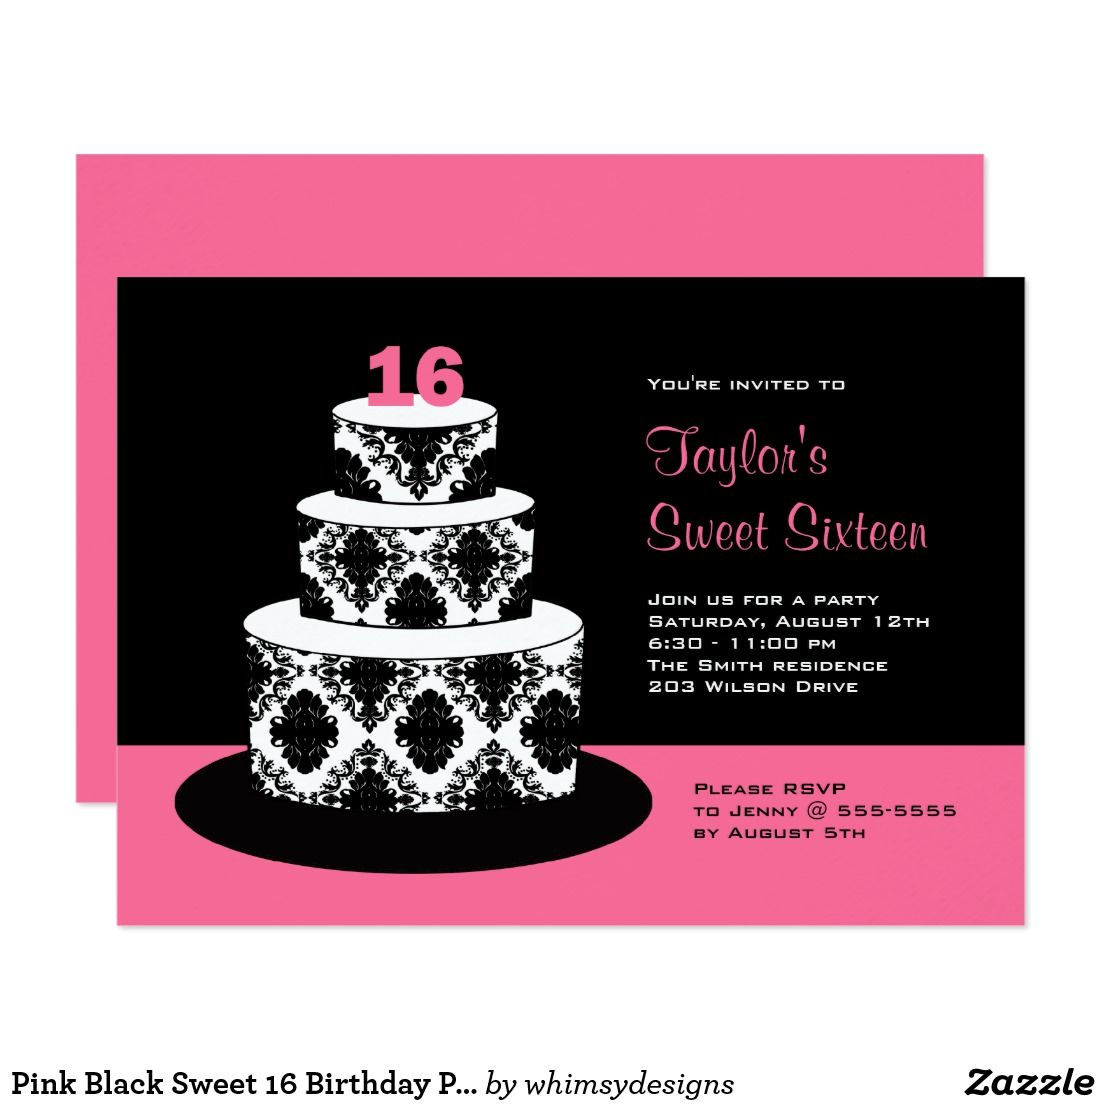 Pink Black Sweet 16 Birthday Party Invitations | Birthday: Sweet ...